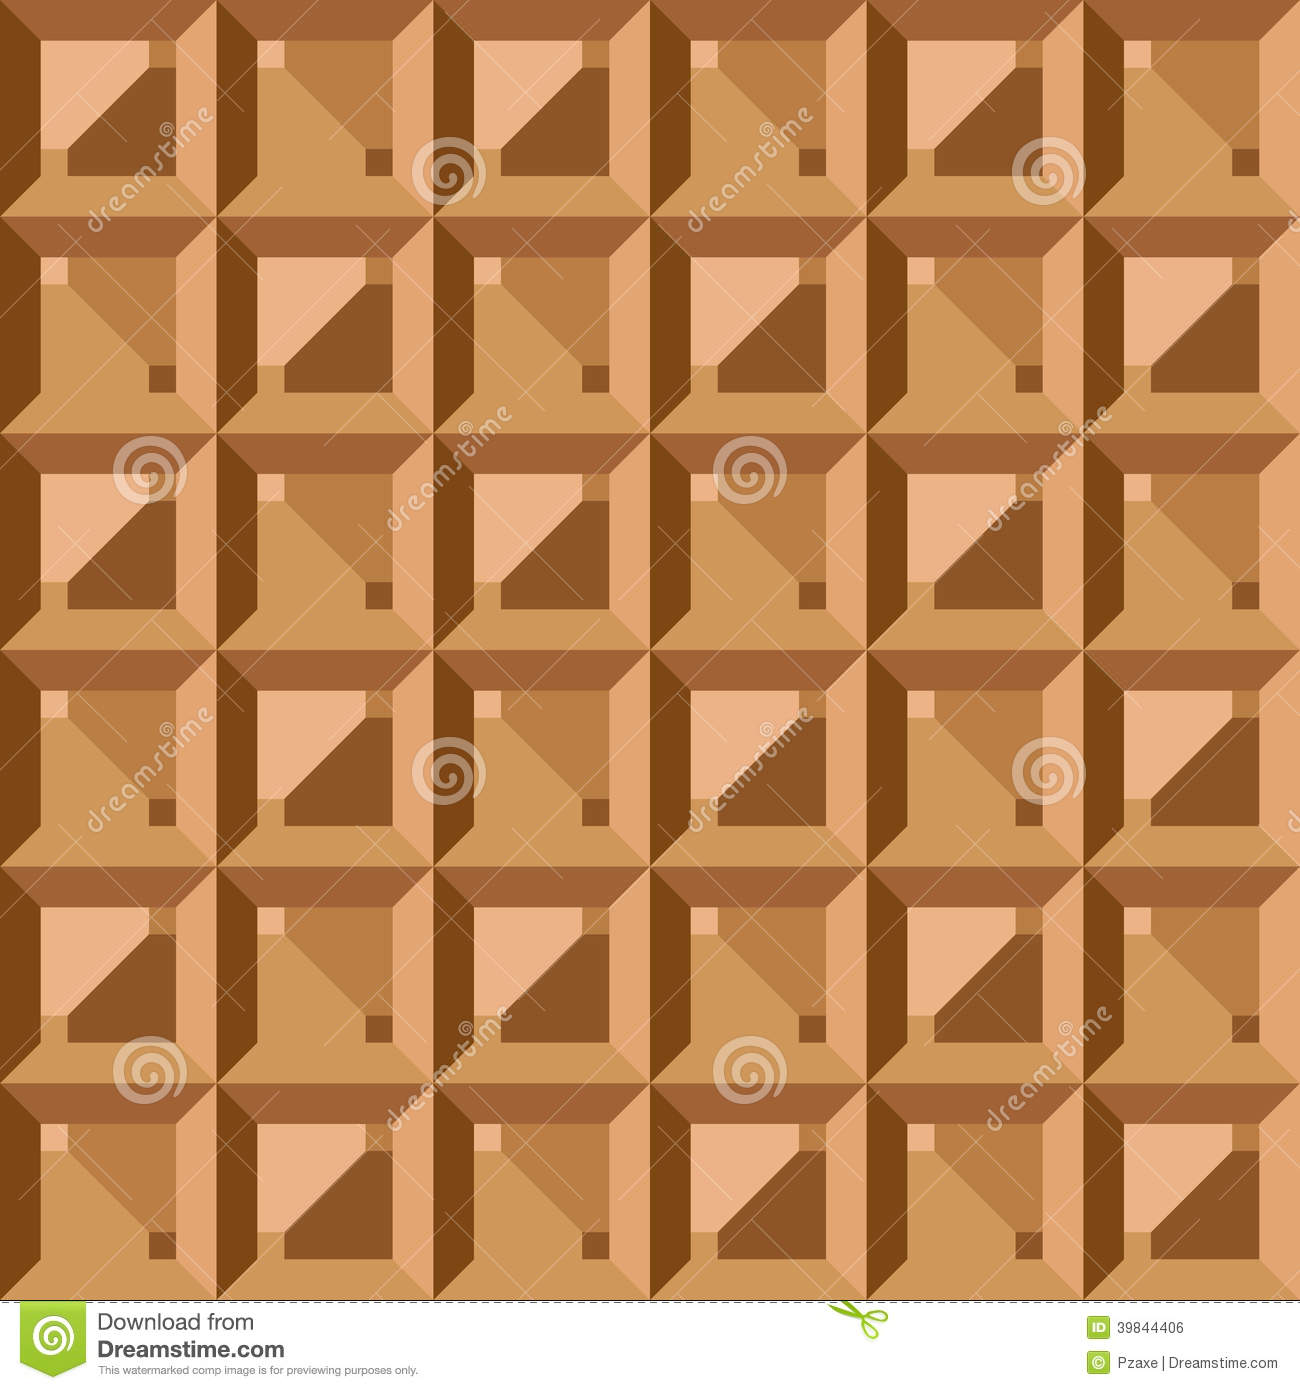 Vector seamless pattern geometric vintage square stock for Object pool design pattern